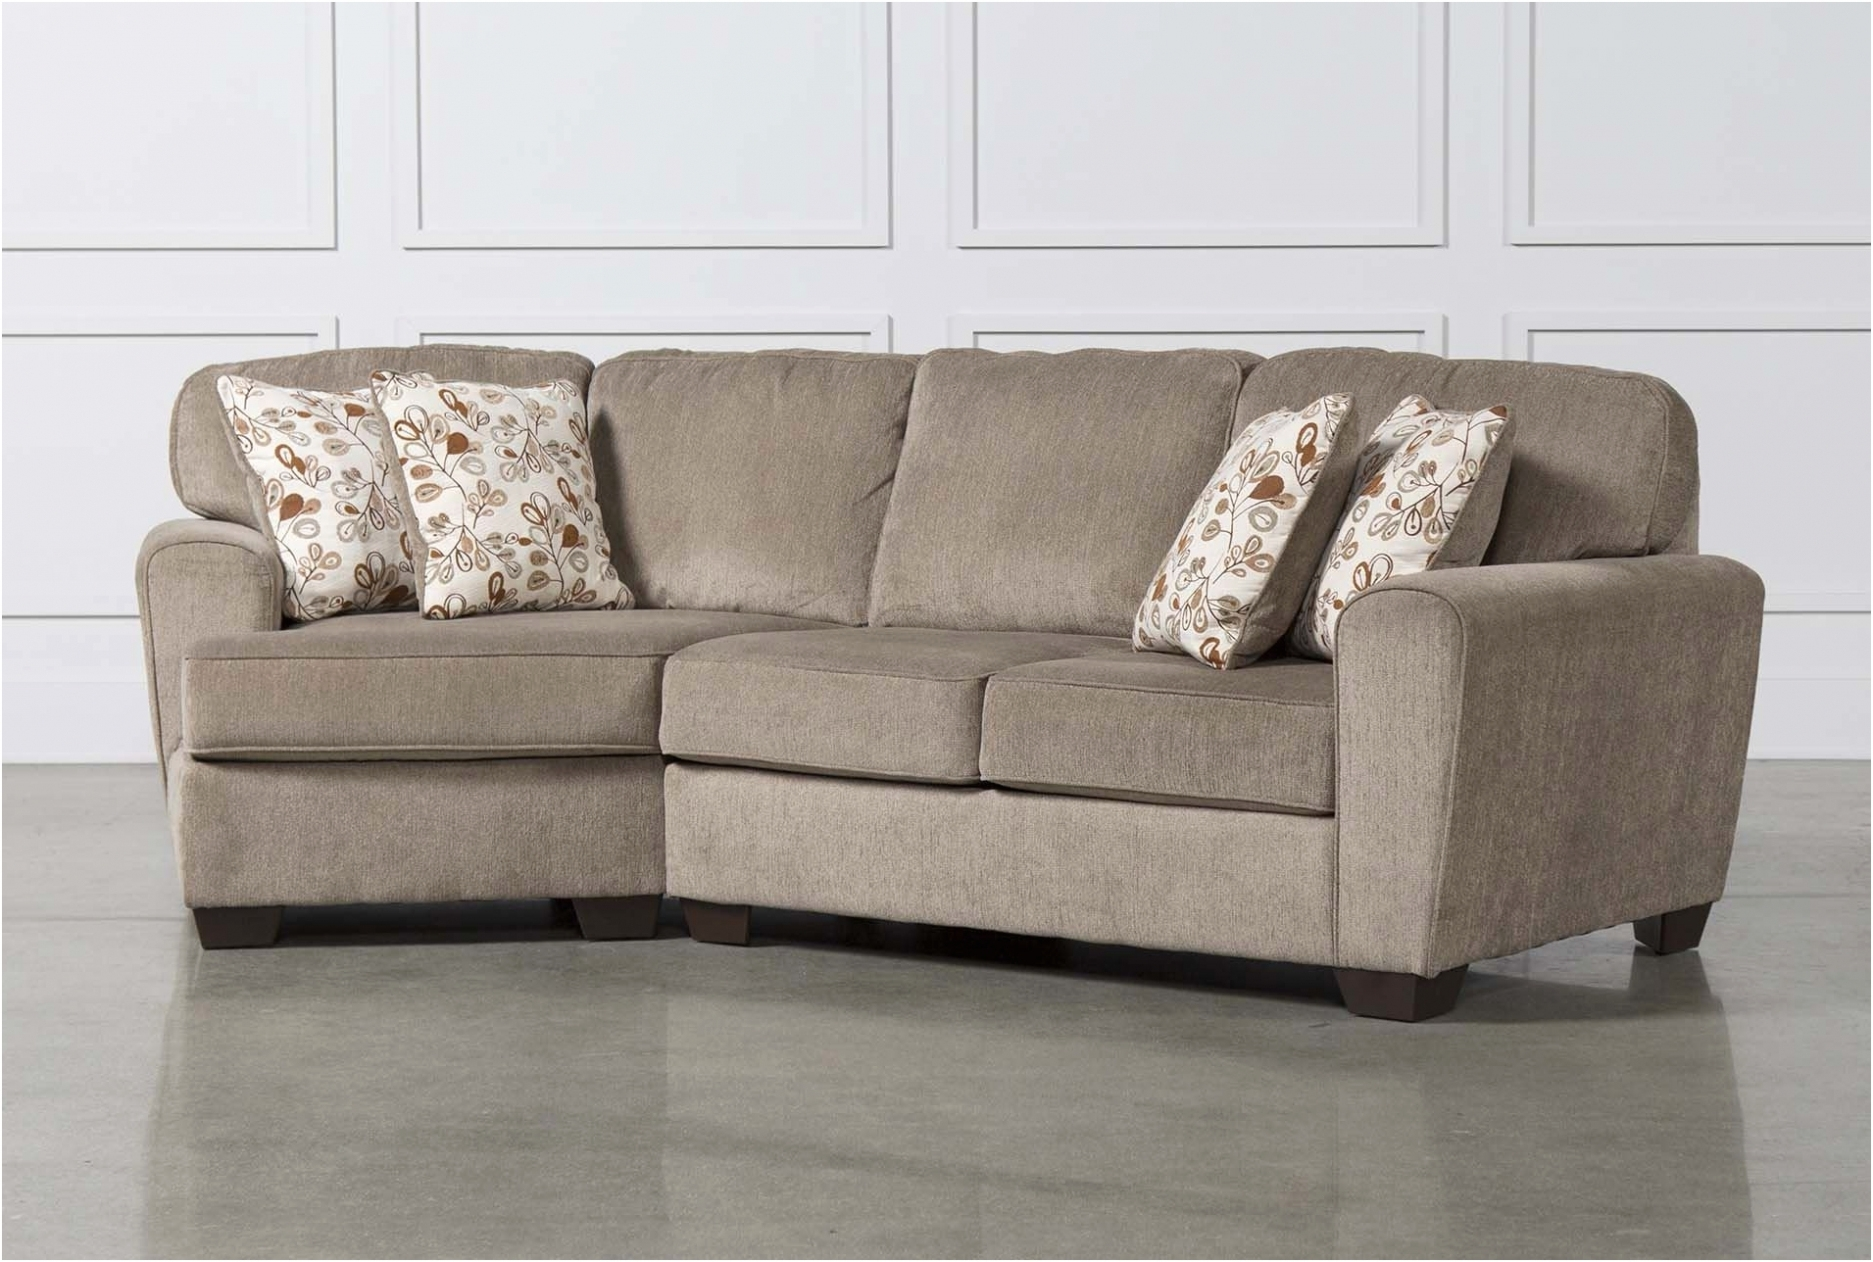 Living Spaces Sectional Sofa Bed – Sofa Design Ideas Inside Aquarius Light Grey 2 Piece Sectionals With Laf Chaise (View 17 of 30)